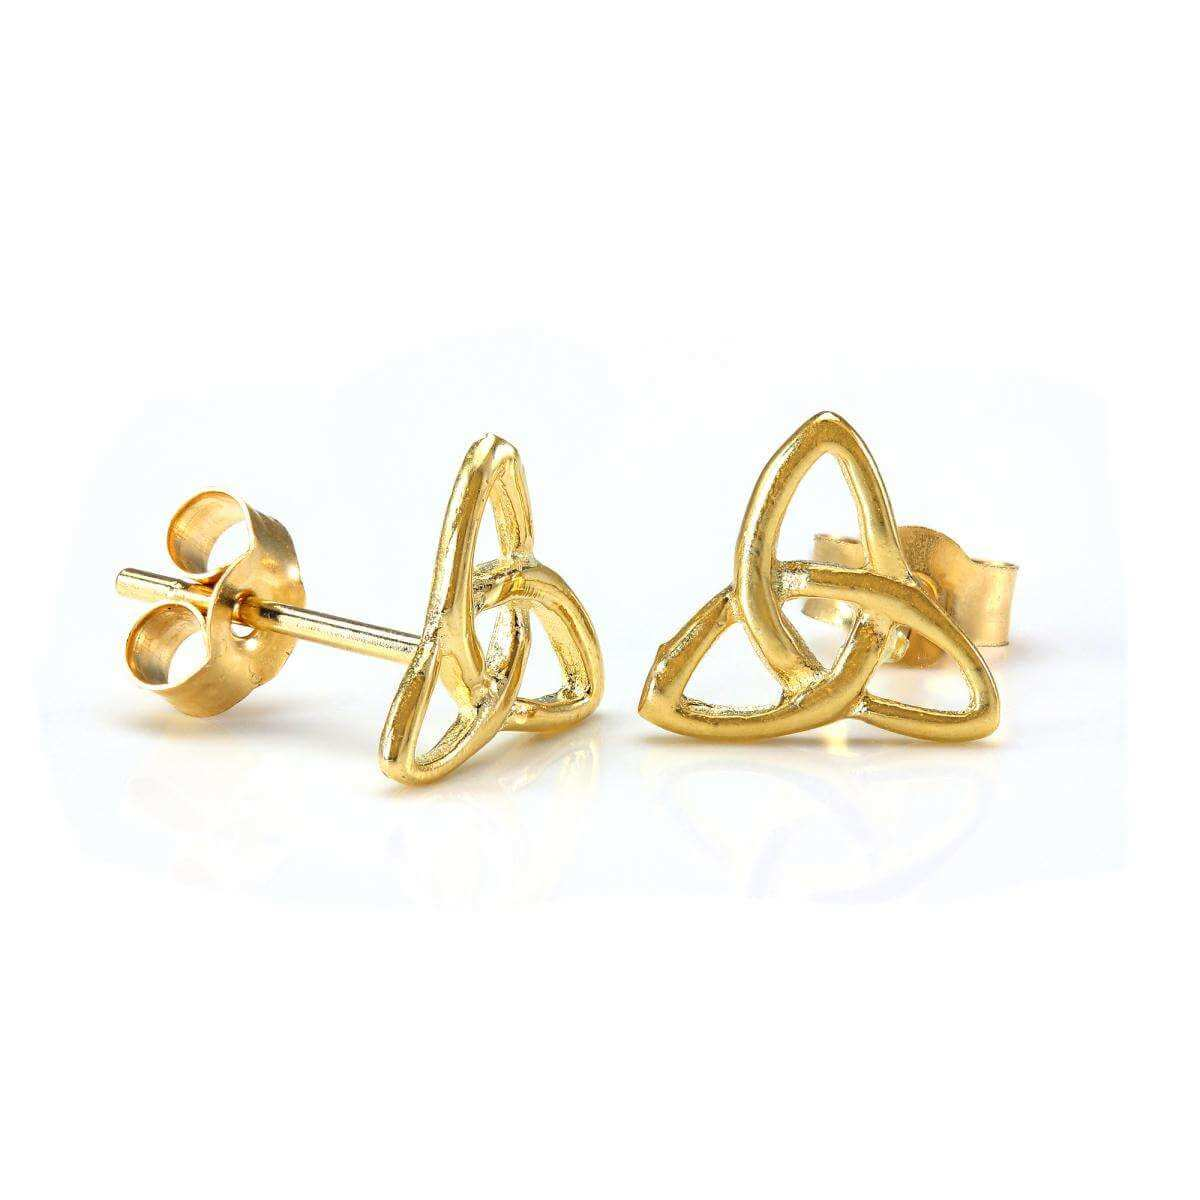 9ct Gold Triangular Celtic Knot Stud Earrings